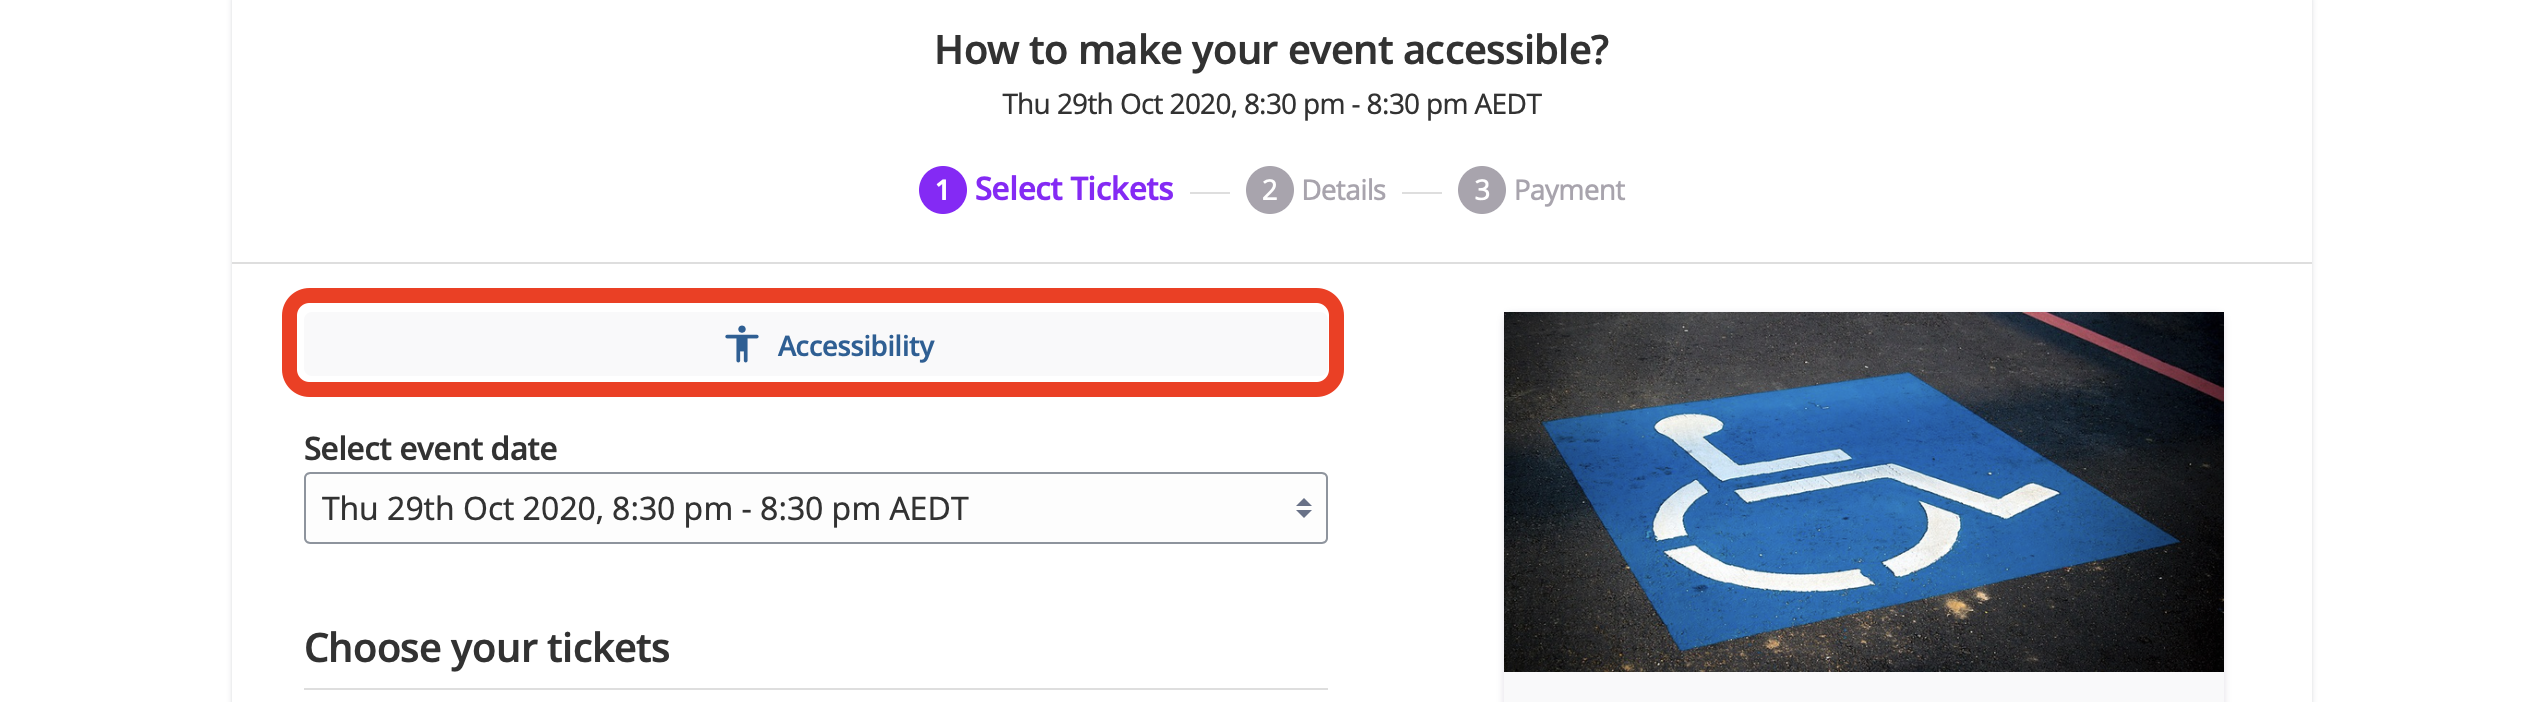 Ticketing checkout page with accessibility button